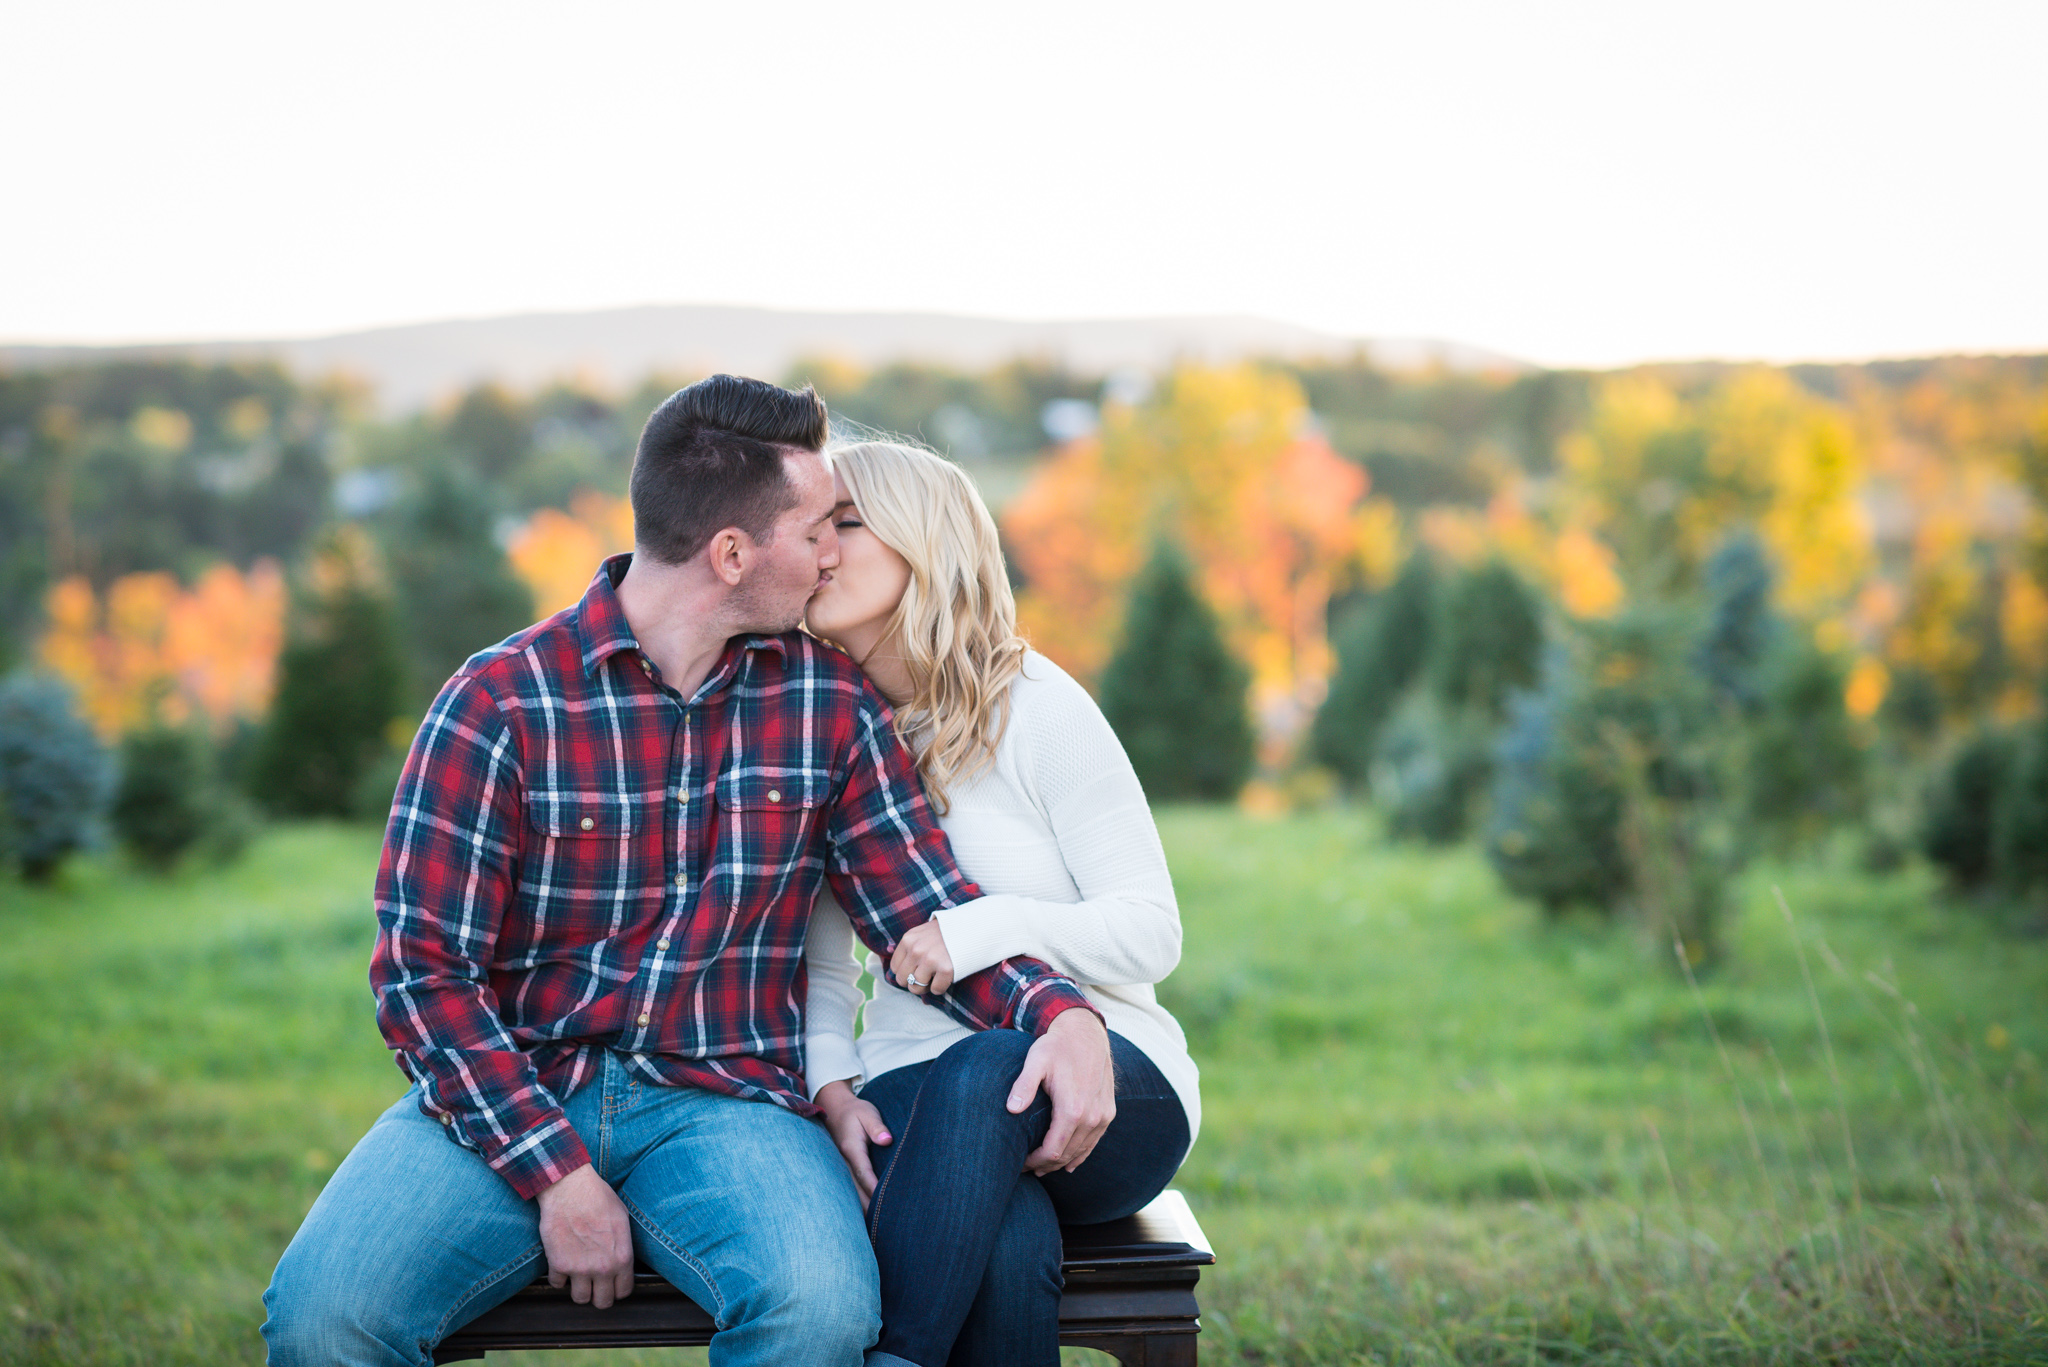 Mindy-Engagement-photography-wedding-photographer-northeast-PA-Scranton-Poconos-35.jpg